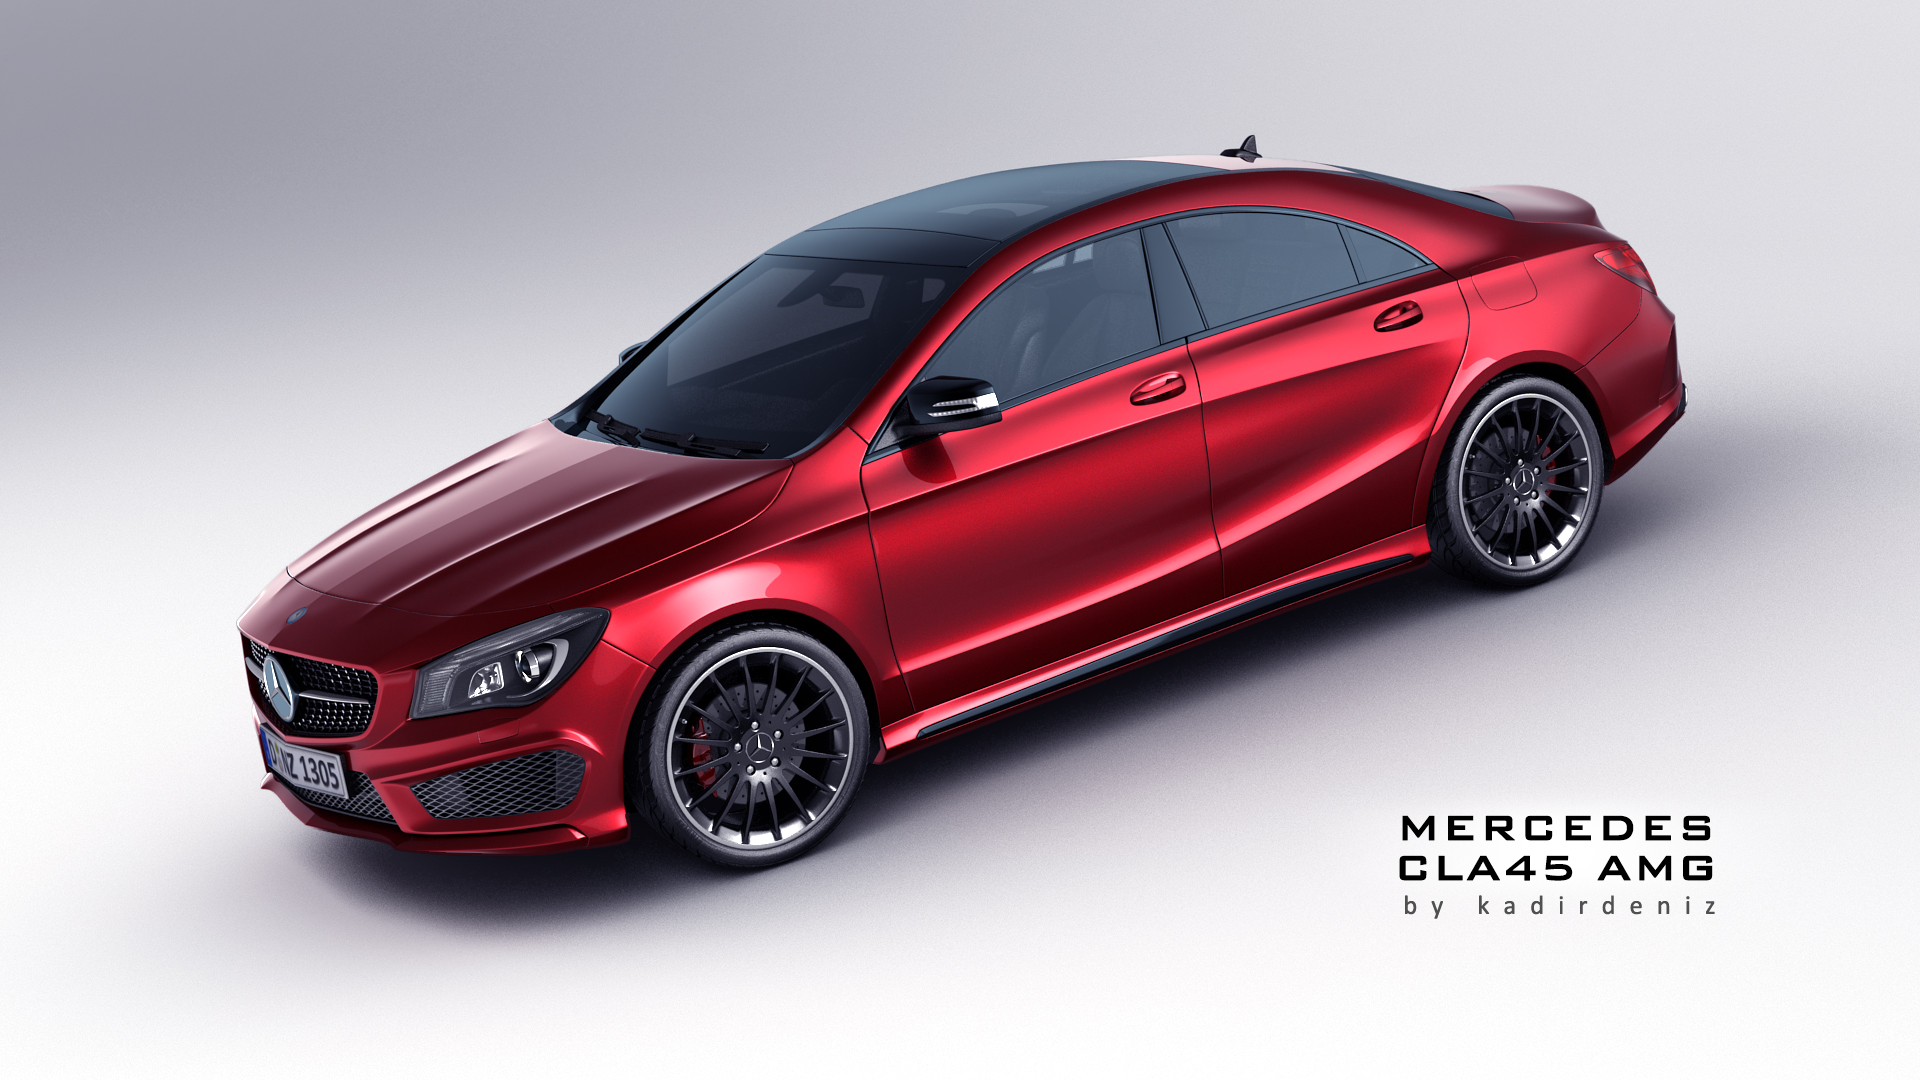 mercedes cla 45 amg 3d model max obj fbx. Black Bedroom Furniture Sets. Home Design Ideas